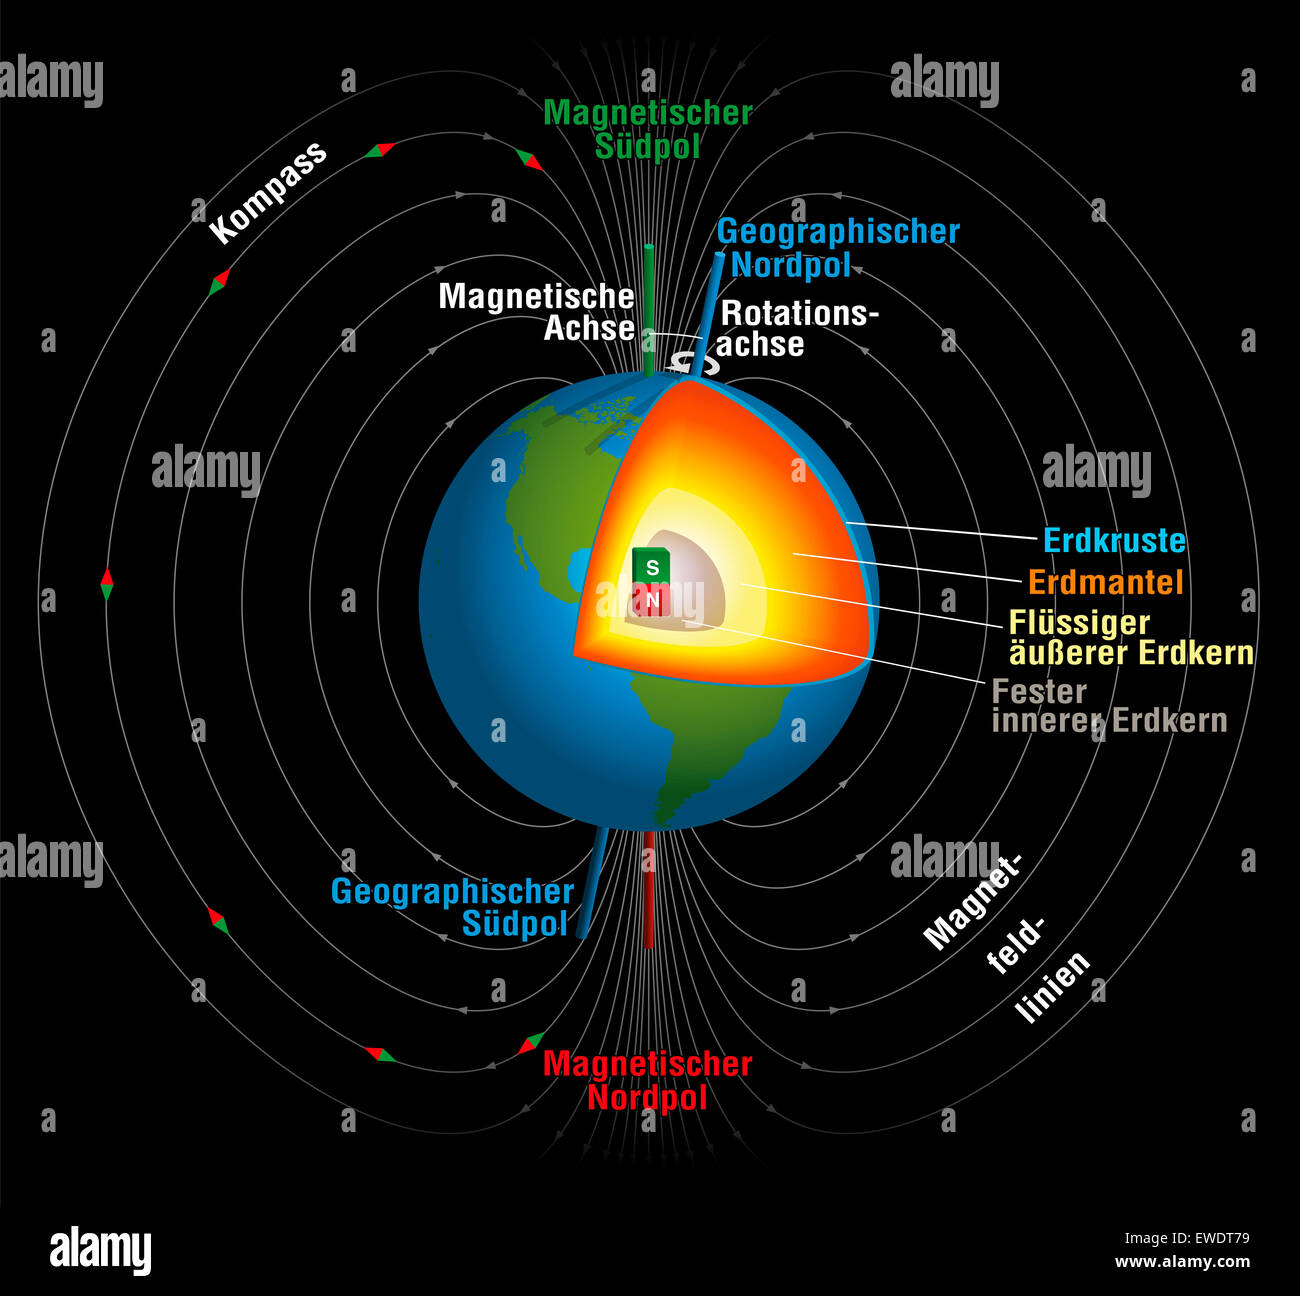 Earths magnetic field german labeling stock photo 84512269 alamy earths magnetic field german labeling ccuart